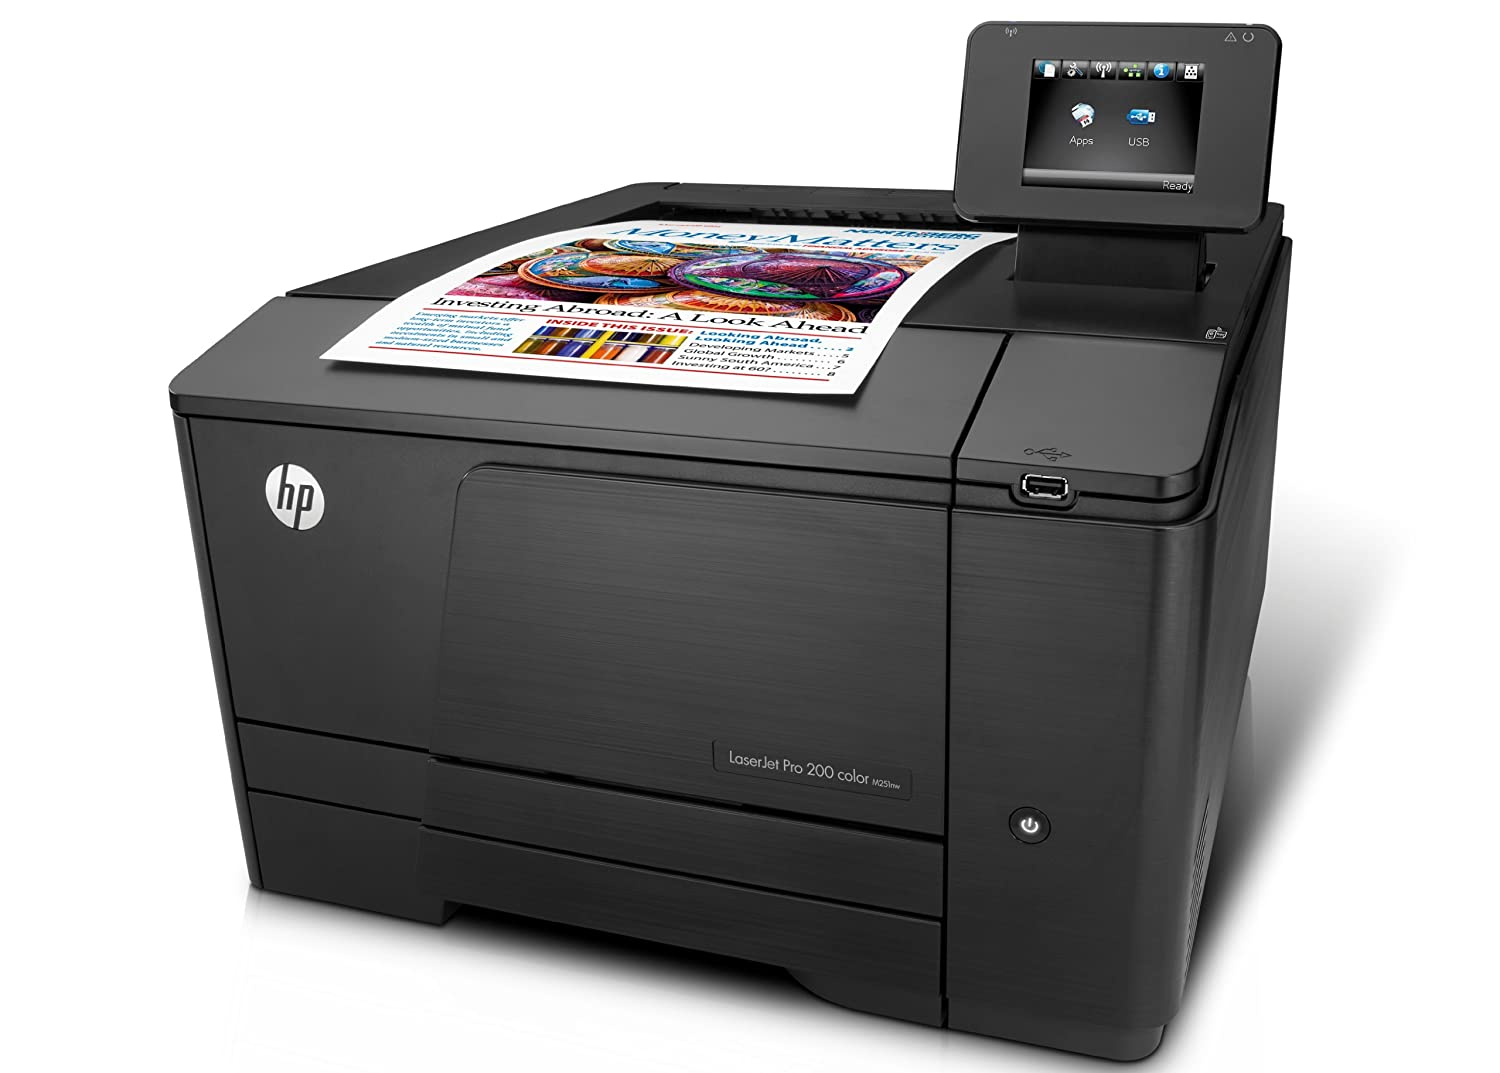 Hp m750 color printing cost per page - Amazon Com Hp Laserjet Pro 200 M251nw Wireless Color Printer Old Version Electronics